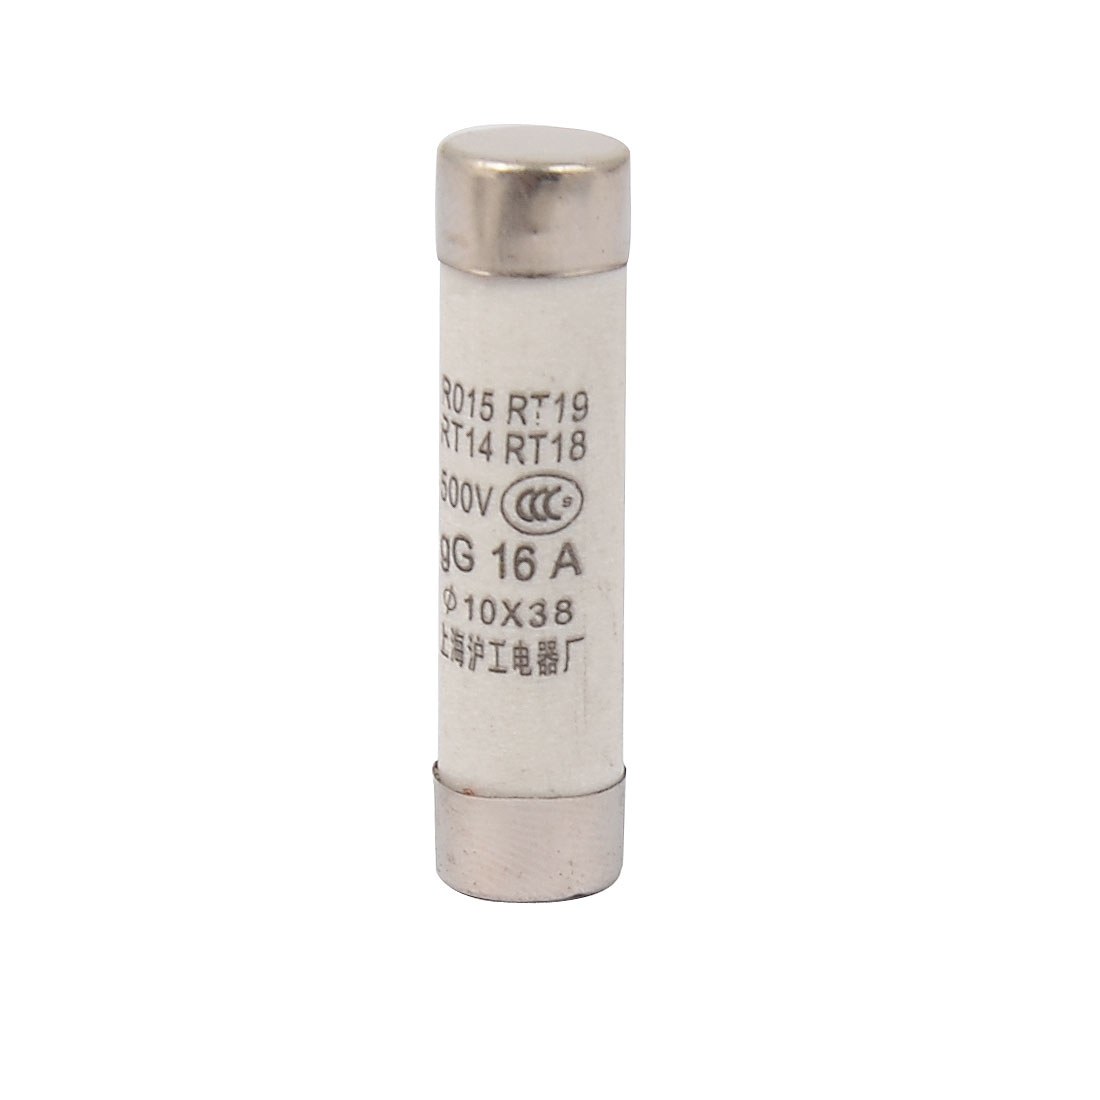 RO15 RT18 RT14 RT19 Ceramic Cylindrical Tube Fuse 16A 500V 10mmx38mm